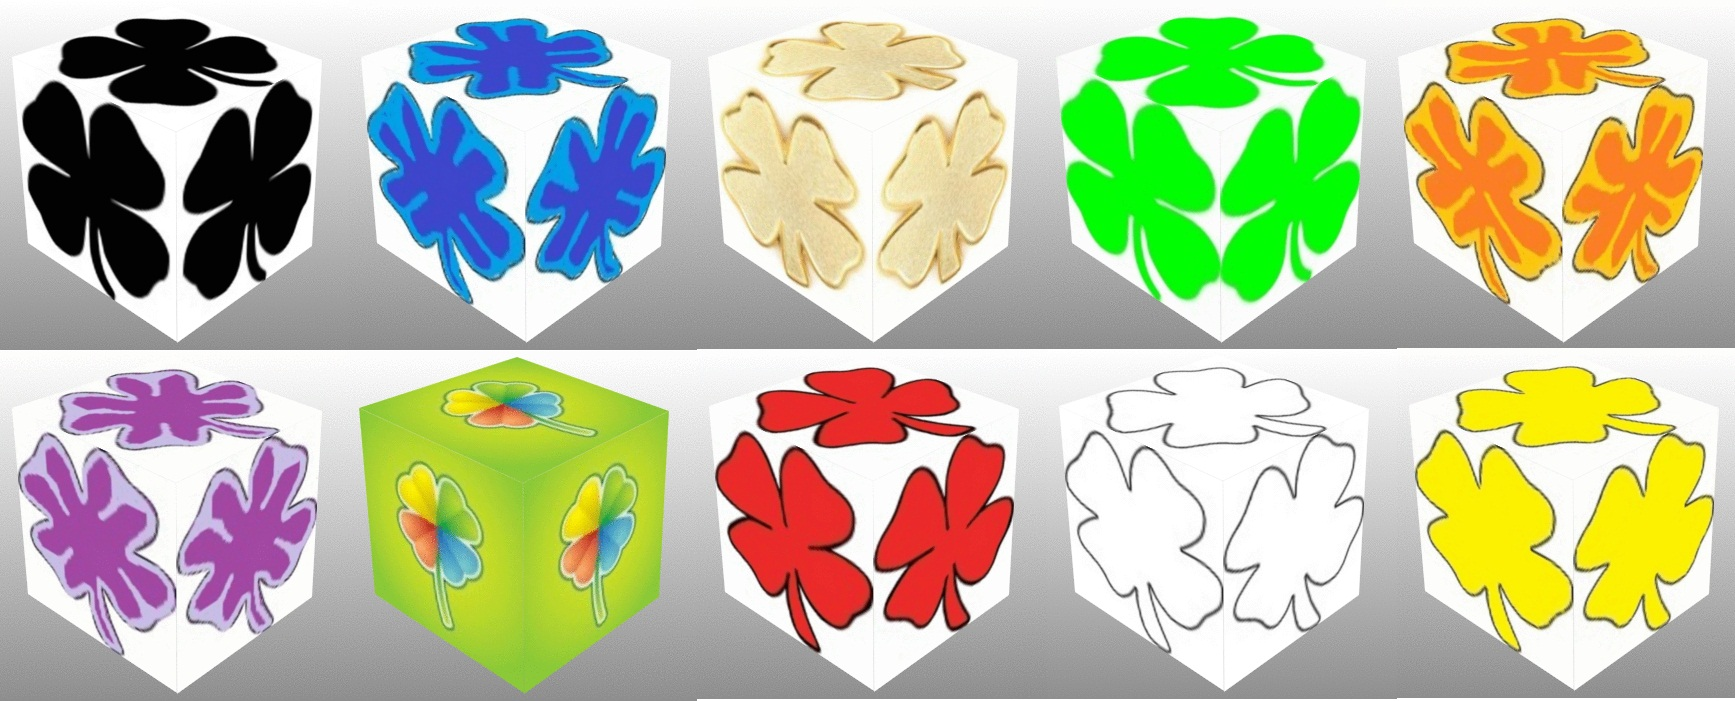 3D cube, dice, Good Luck, Good Luck Dice, Green Clover, Red Clover, Black Clover, Gold Clover, White Clover, Rainbow Clover, Four Leaf Clover, Black Four Leaf Clover, Gold Four Leaf Clover, Green Four Leaf Clover, Rainbow Four Leaf Clover, Red Four Leaf Clover, White Four Leaf Clover, Yellow Four Leaf Clover, collage